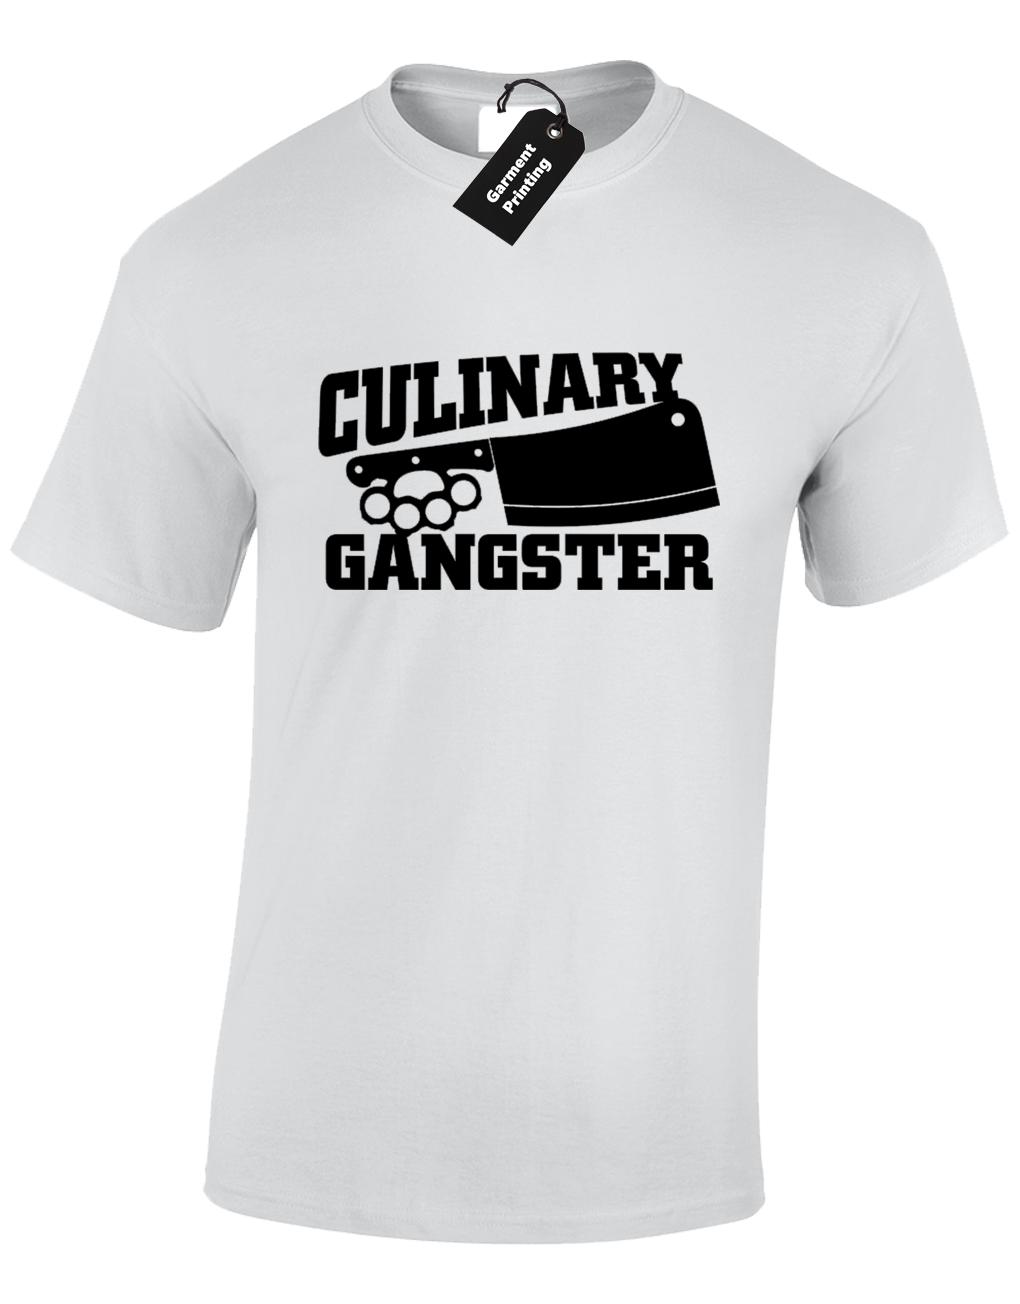 1928220e2 CULINARY GANGSTER MENS T SHIRT FUNNY GREAT BRITISH CHEF DESIGN BAKE OFF COOK  Cool Casual Pride T Shirt Shirt Designs Best T Shirts From Cls6688524, ...